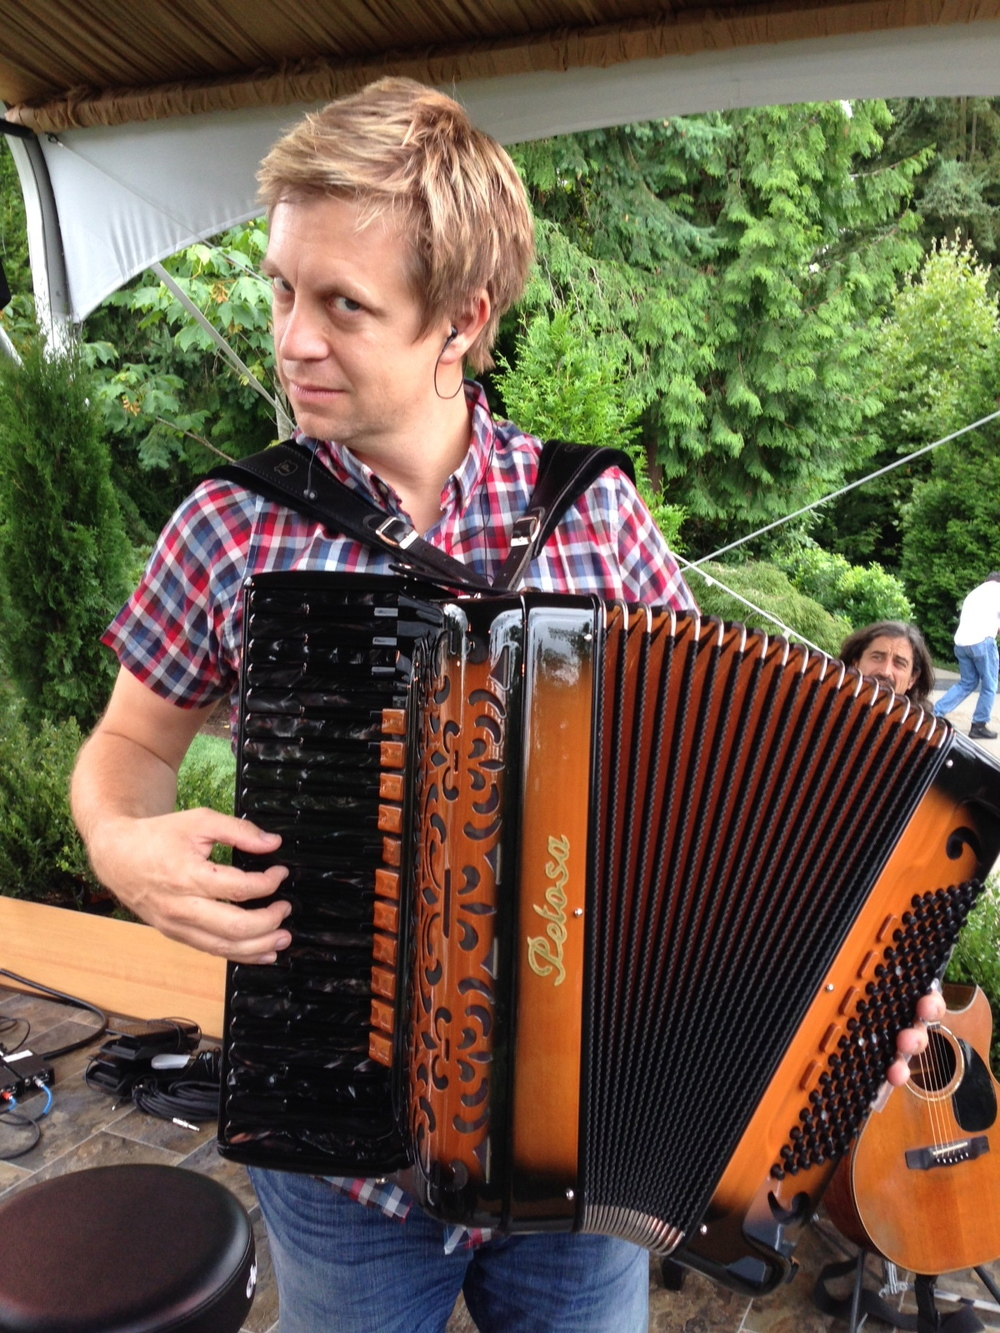 rrockin' some accordion, a beauty from Petosa in Seattle @ Bill Gates' house